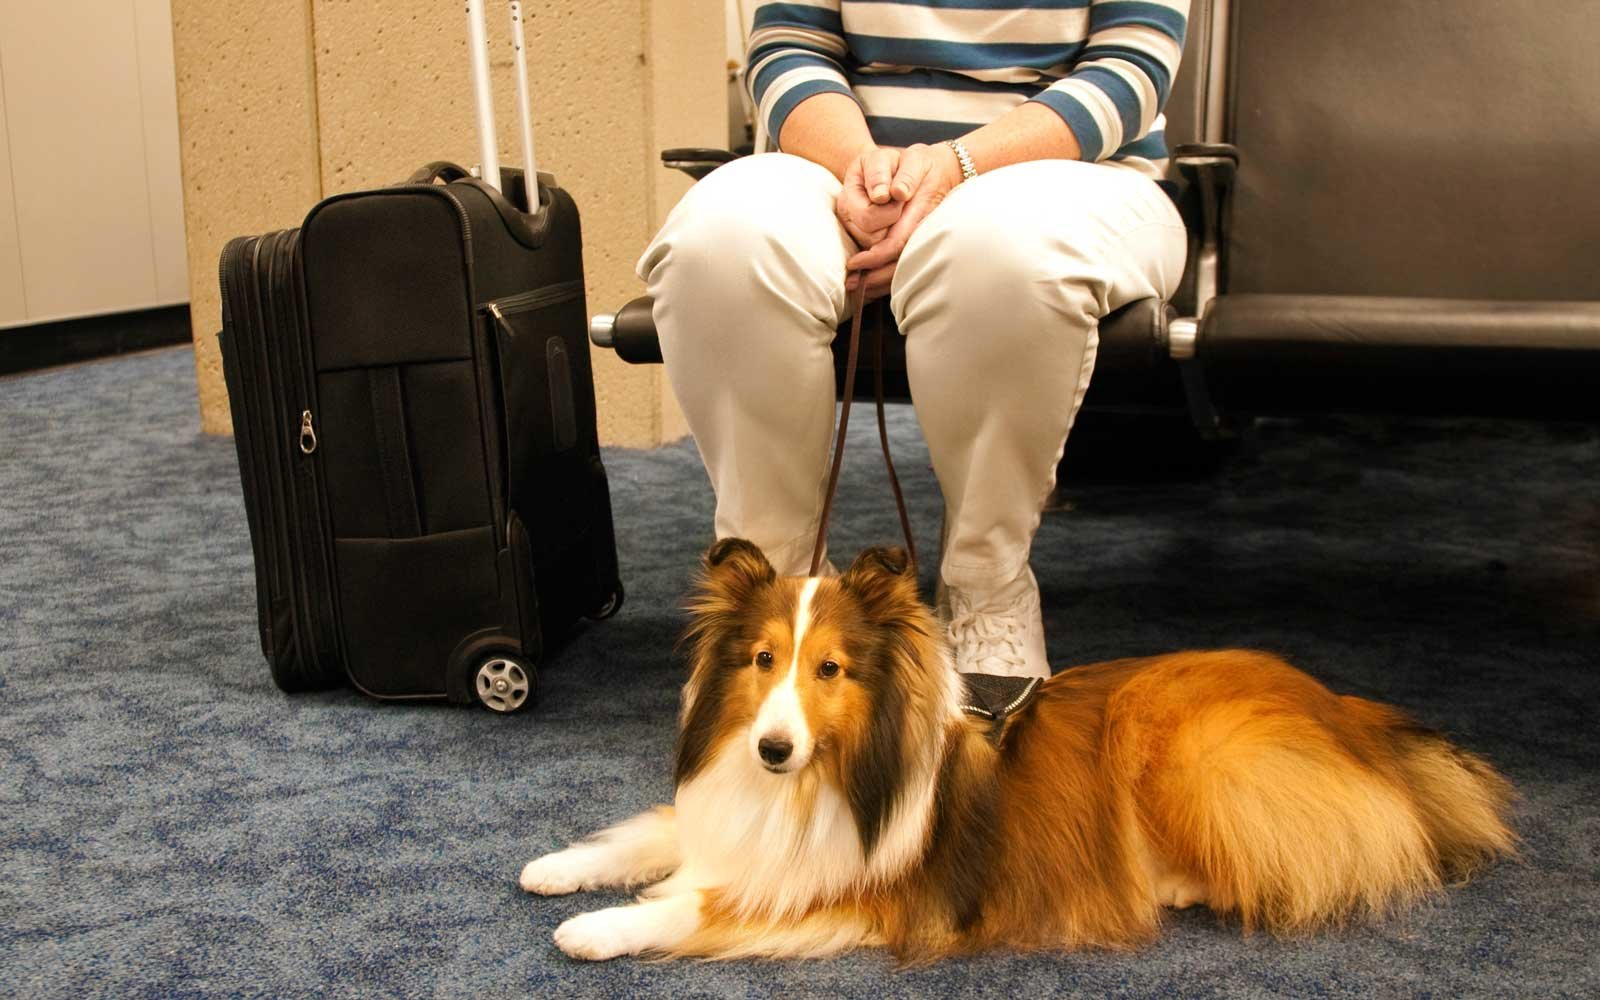 Delta cracks down on assist animals on board after urination, biting incidents